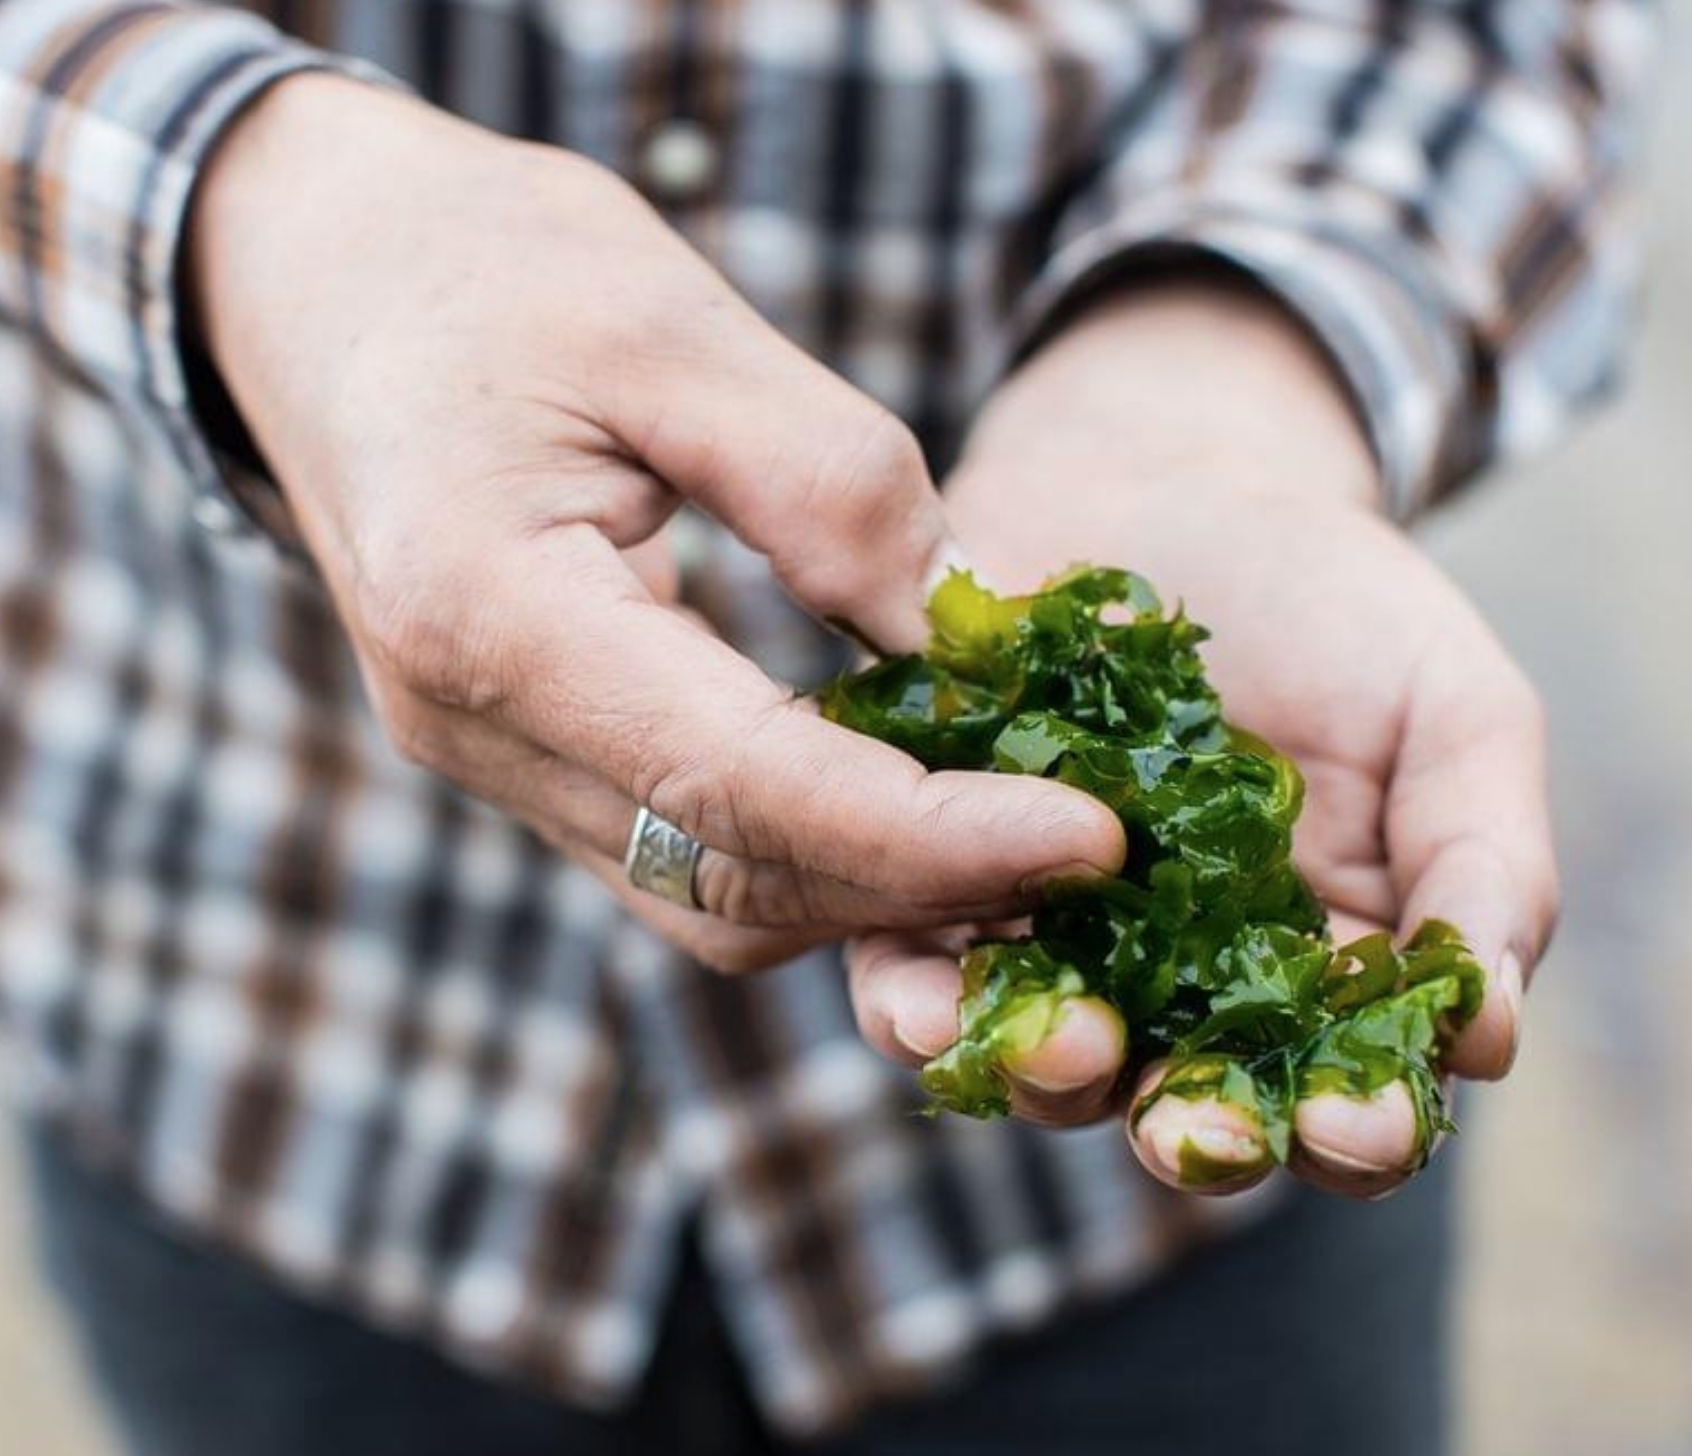 - The perks and Challenges of working with wild ingredients, Dave Withers, Archie Rose,  November 2018